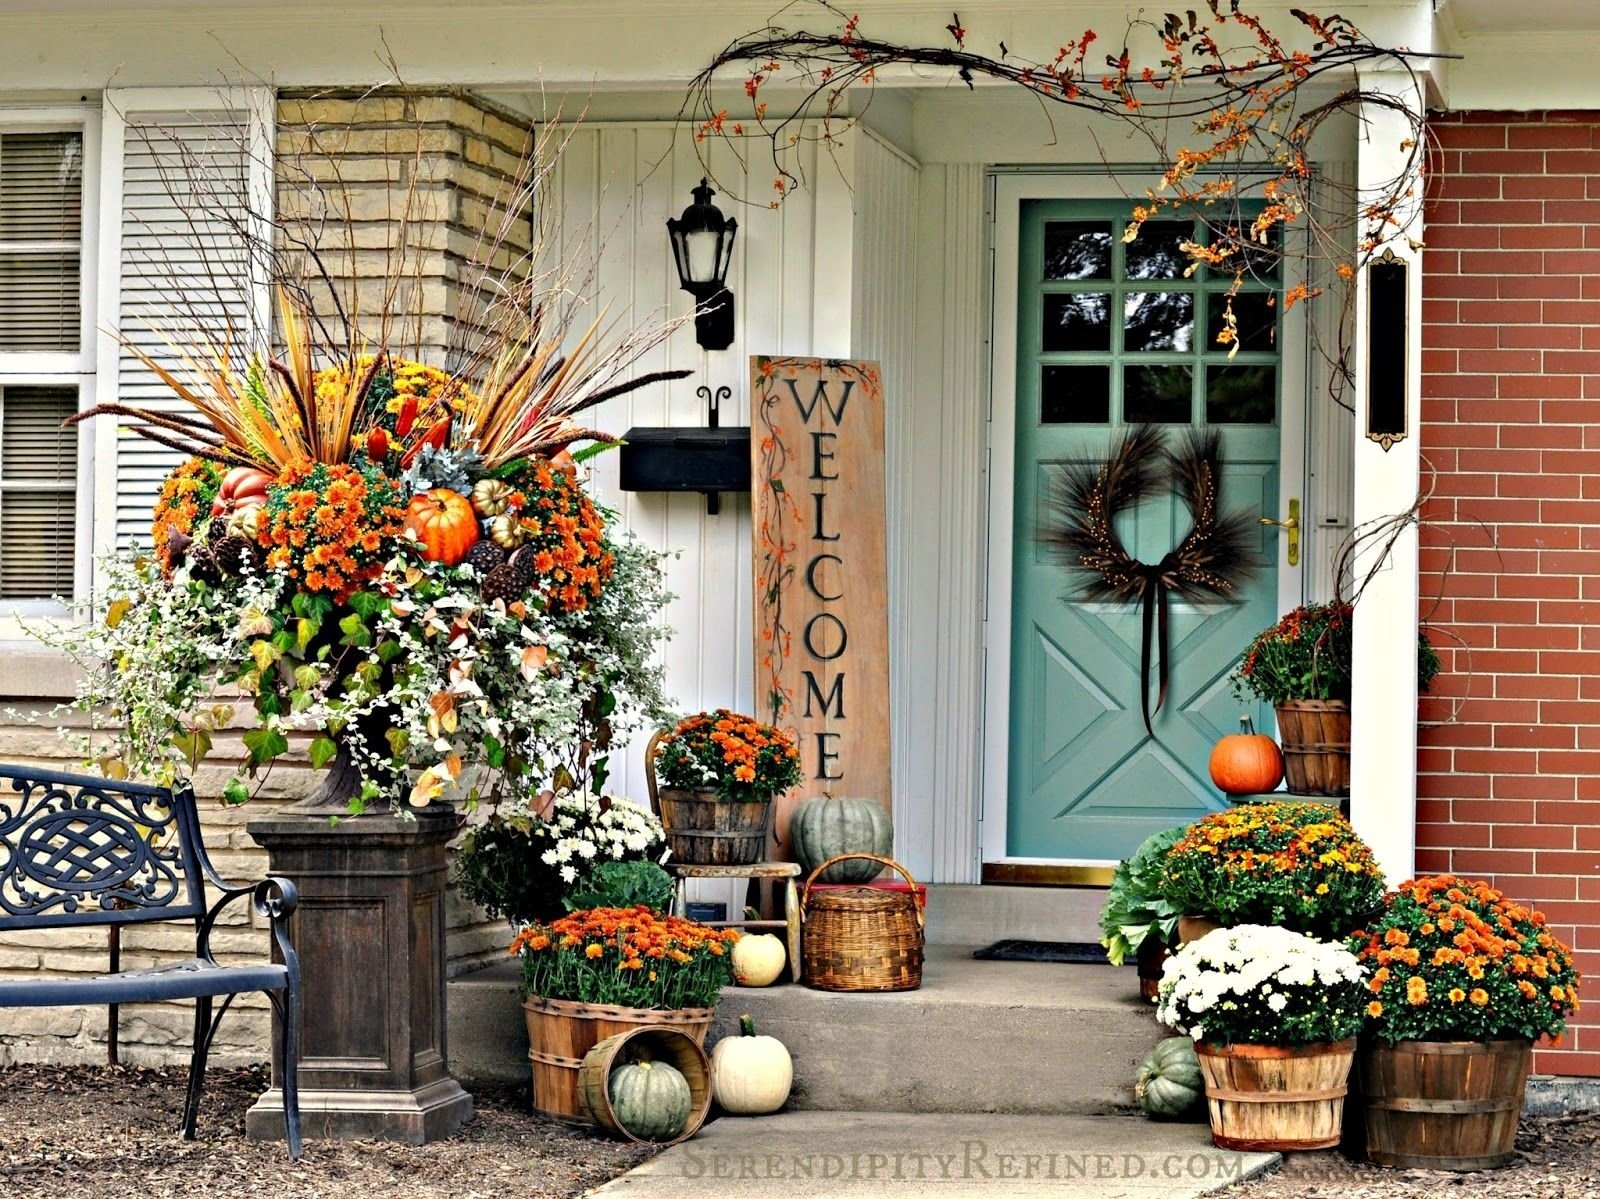 10 Lovely Front Porch Decorating Ideas For Fall falling for fall porch party highlights porch front porches and 2020